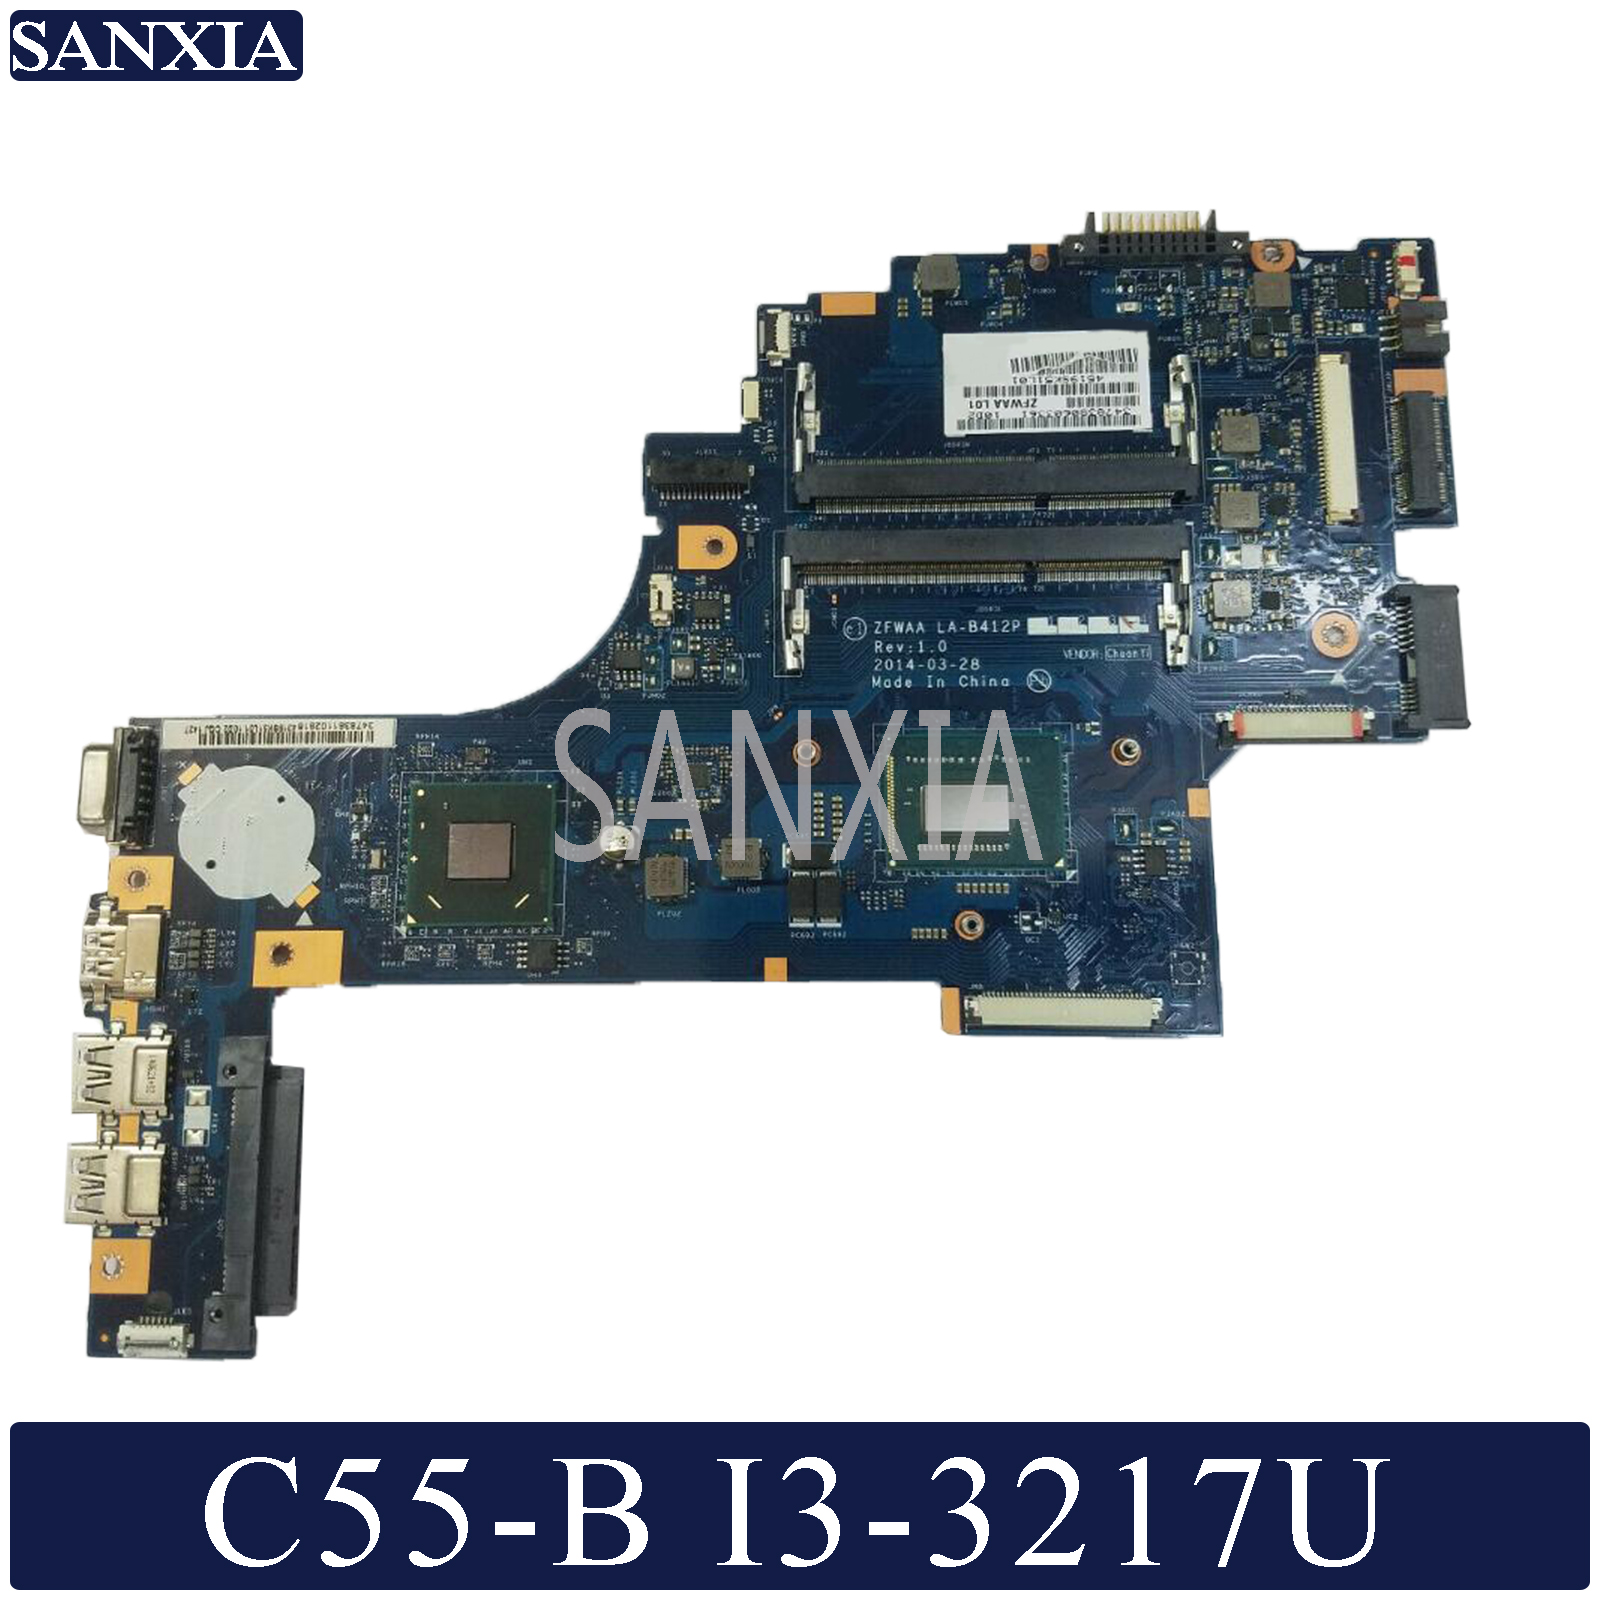 KEFU LA-B412P Laptop <font><b>motherboard</b></font> for <font><b>Toshiba</b></font> <font><b>Satellite</b></font> <font><b>C55</b></font>-B original mainboard I3-3217U image